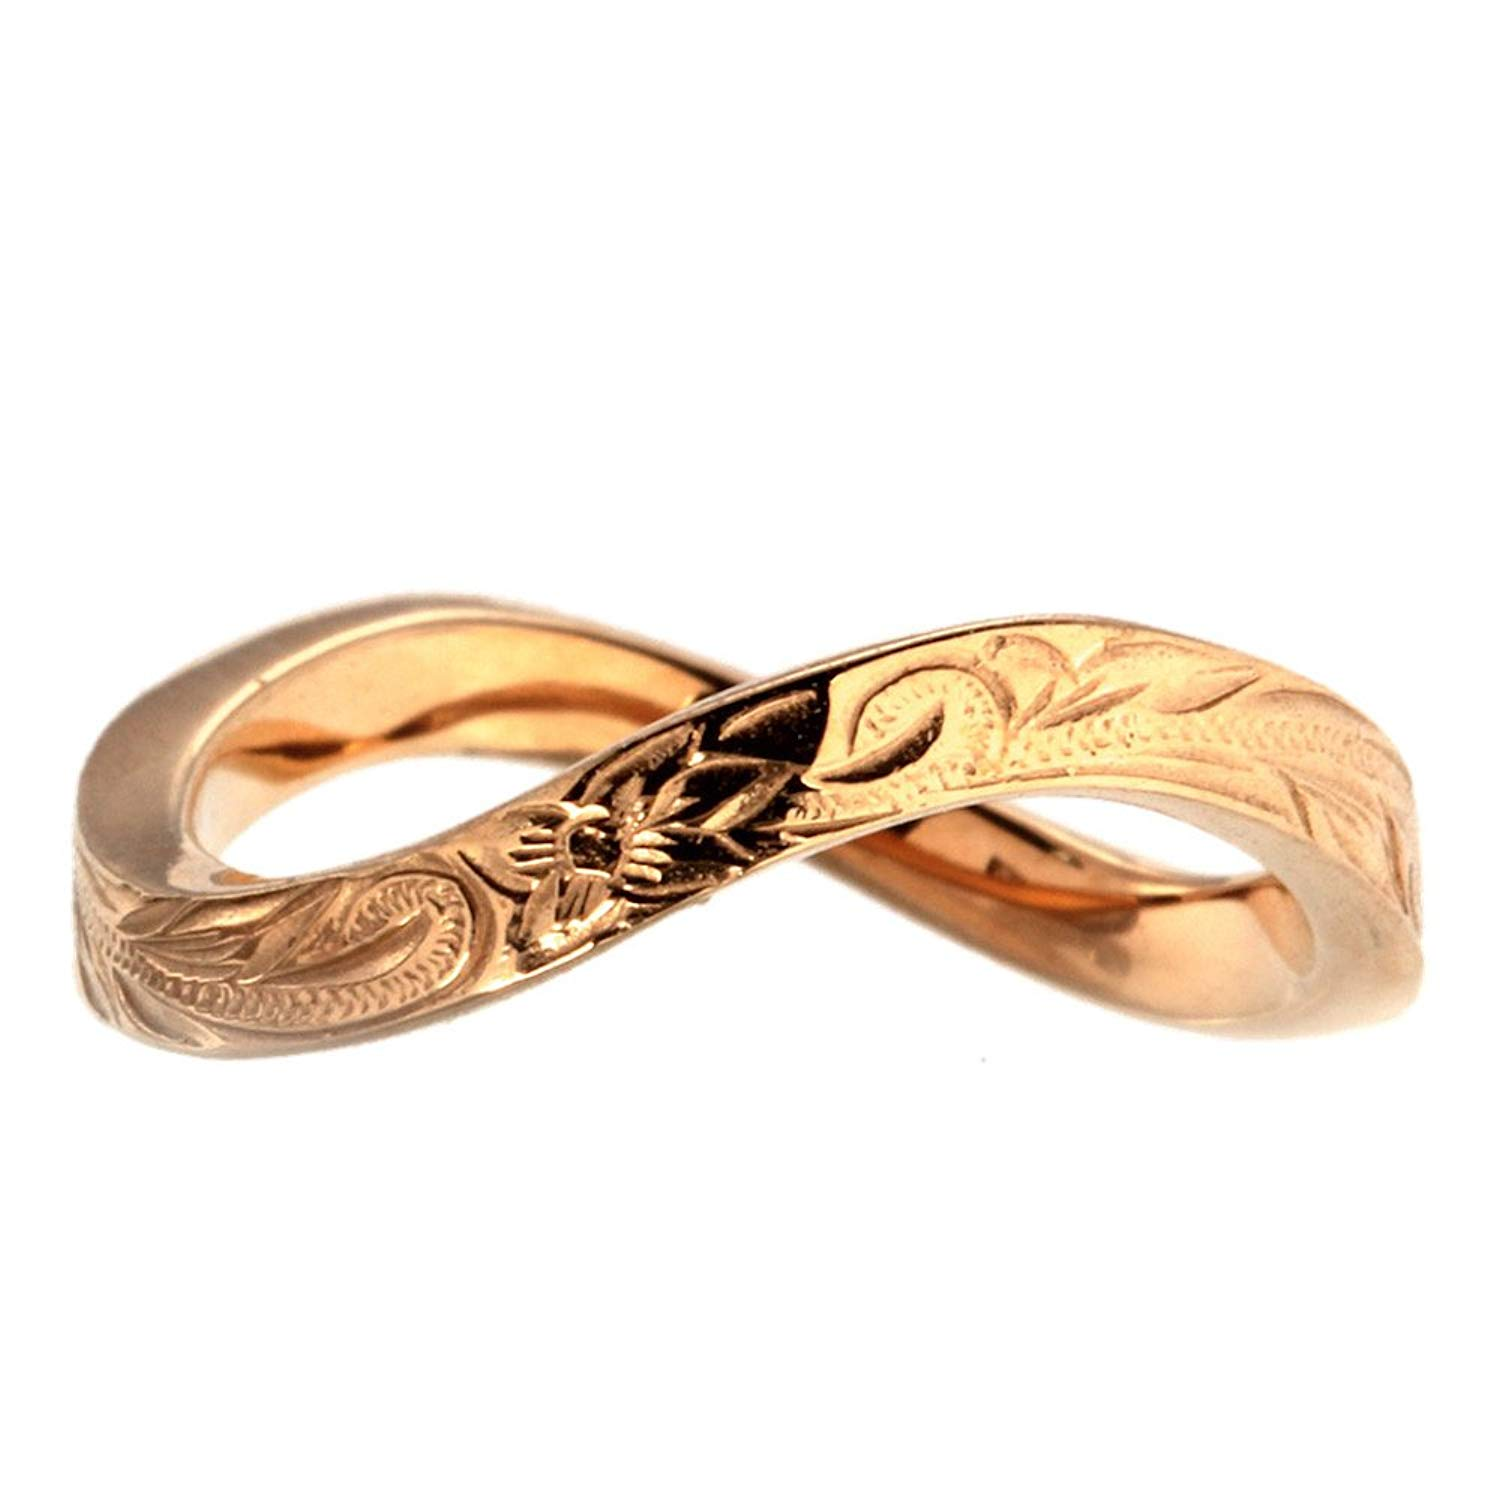 Cheap gold hawaiian ring find gold hawaiian ring deals on line at get quotations 925 sterling silverrose gold hibiscus flower hawaiian ring izmirmasajfo